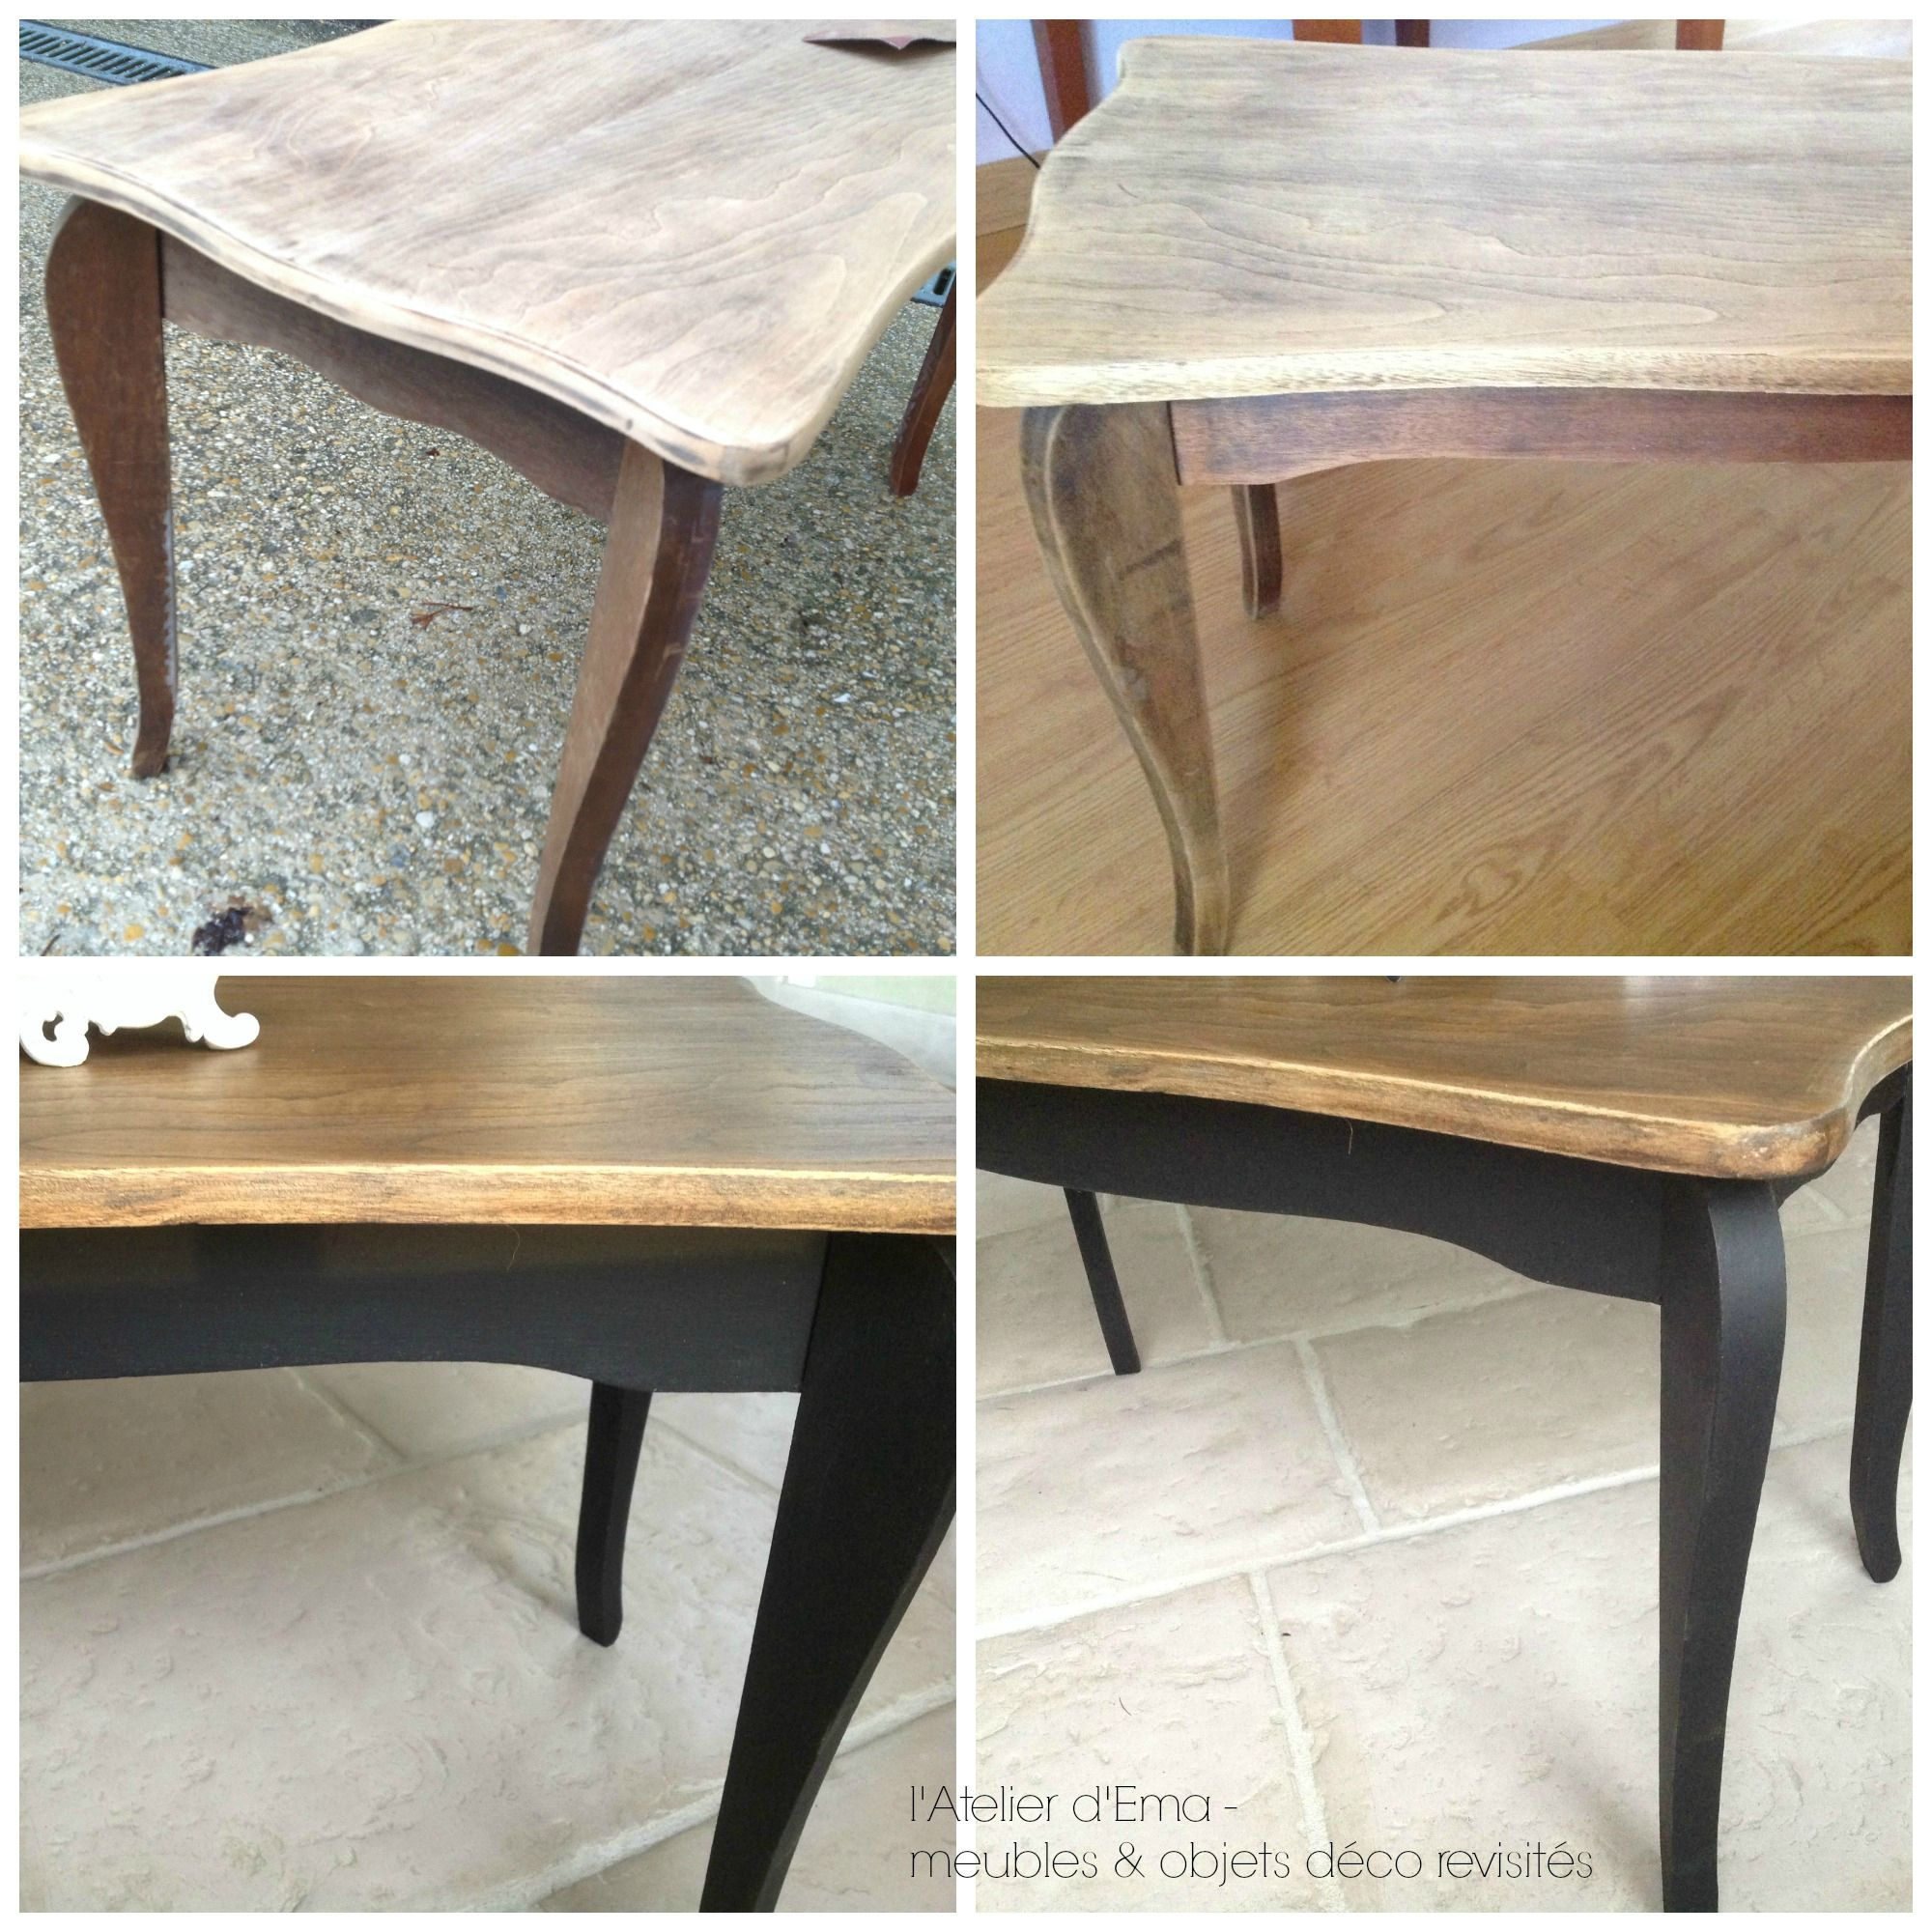 Table Basse En Bois Double Patine Noir Bois Naturel L Atelier D Ema Table Basse Bois Table Basse Table De Salon